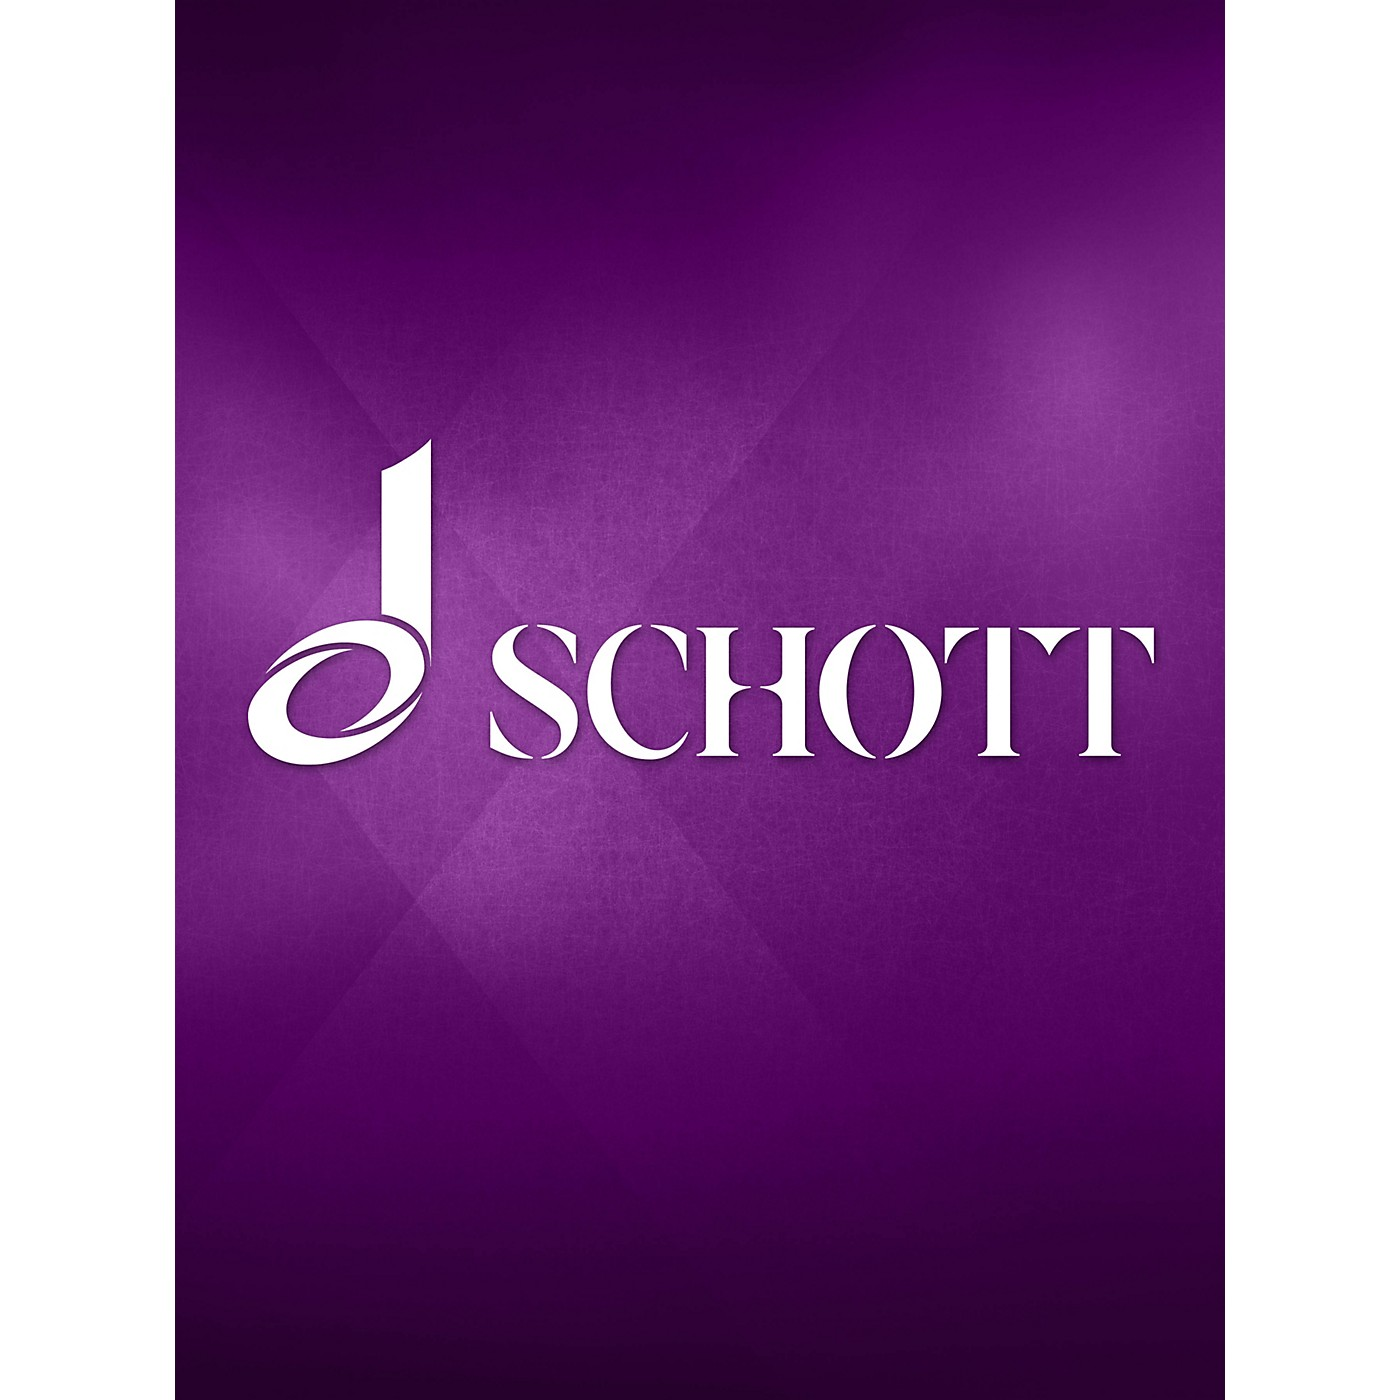 Schott Trio in G minor Schott Series by Georg Philipp Telemann thumbnail